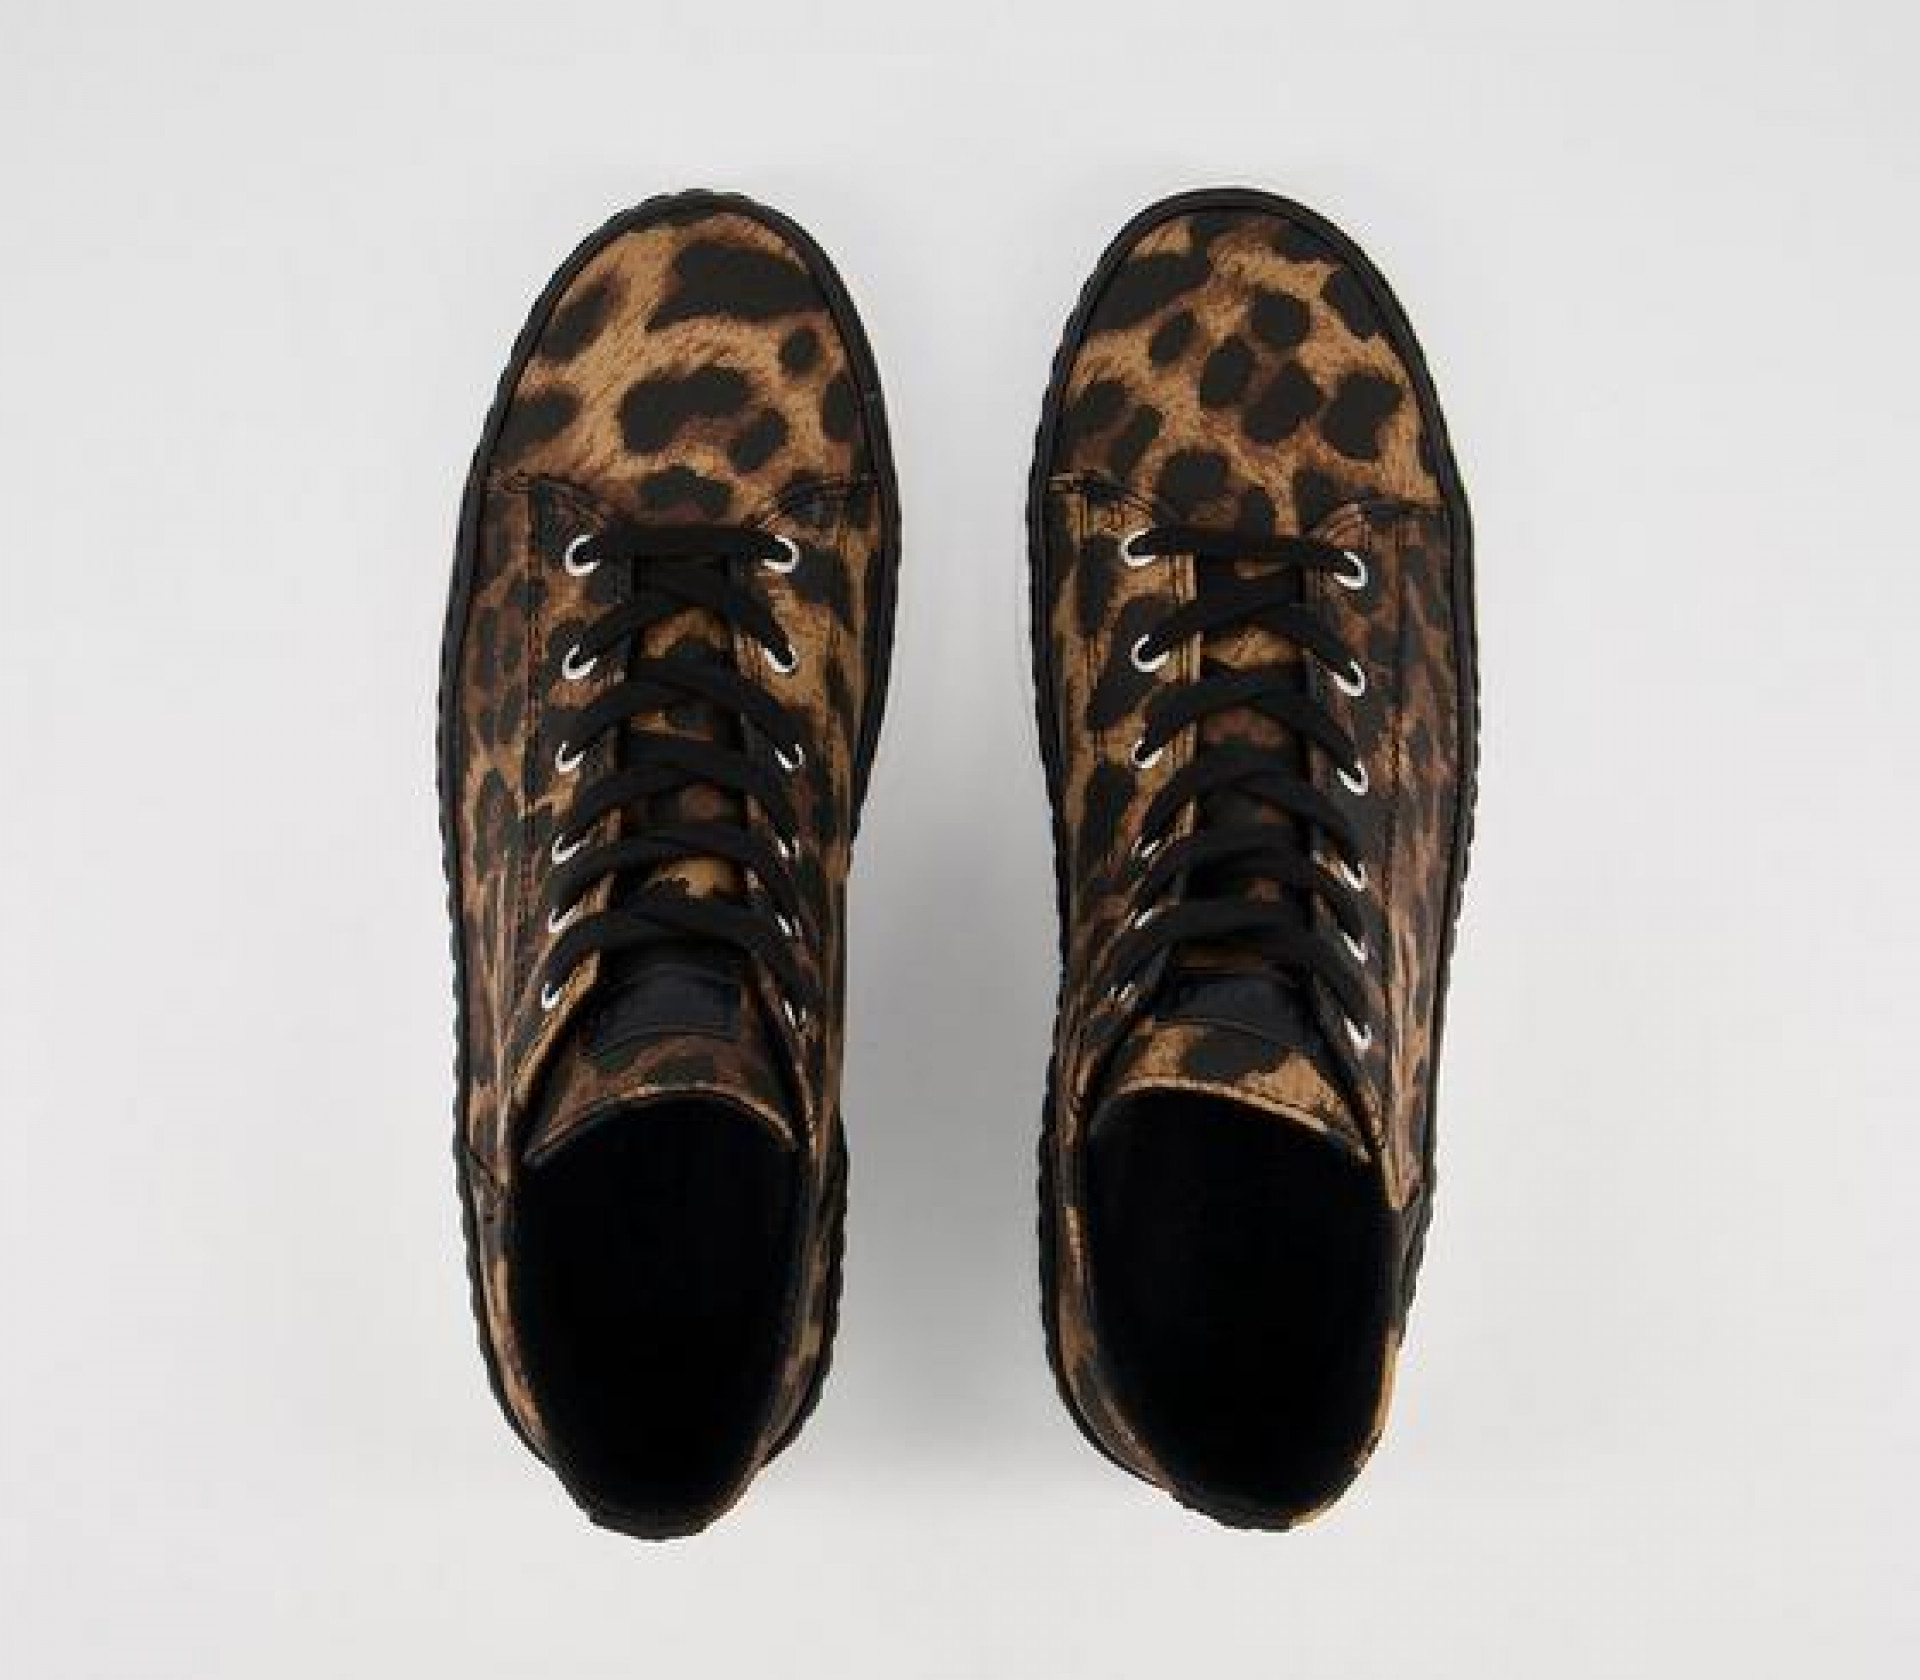 Office Fazed Lace Up High Top Trainers Leopard Canvas